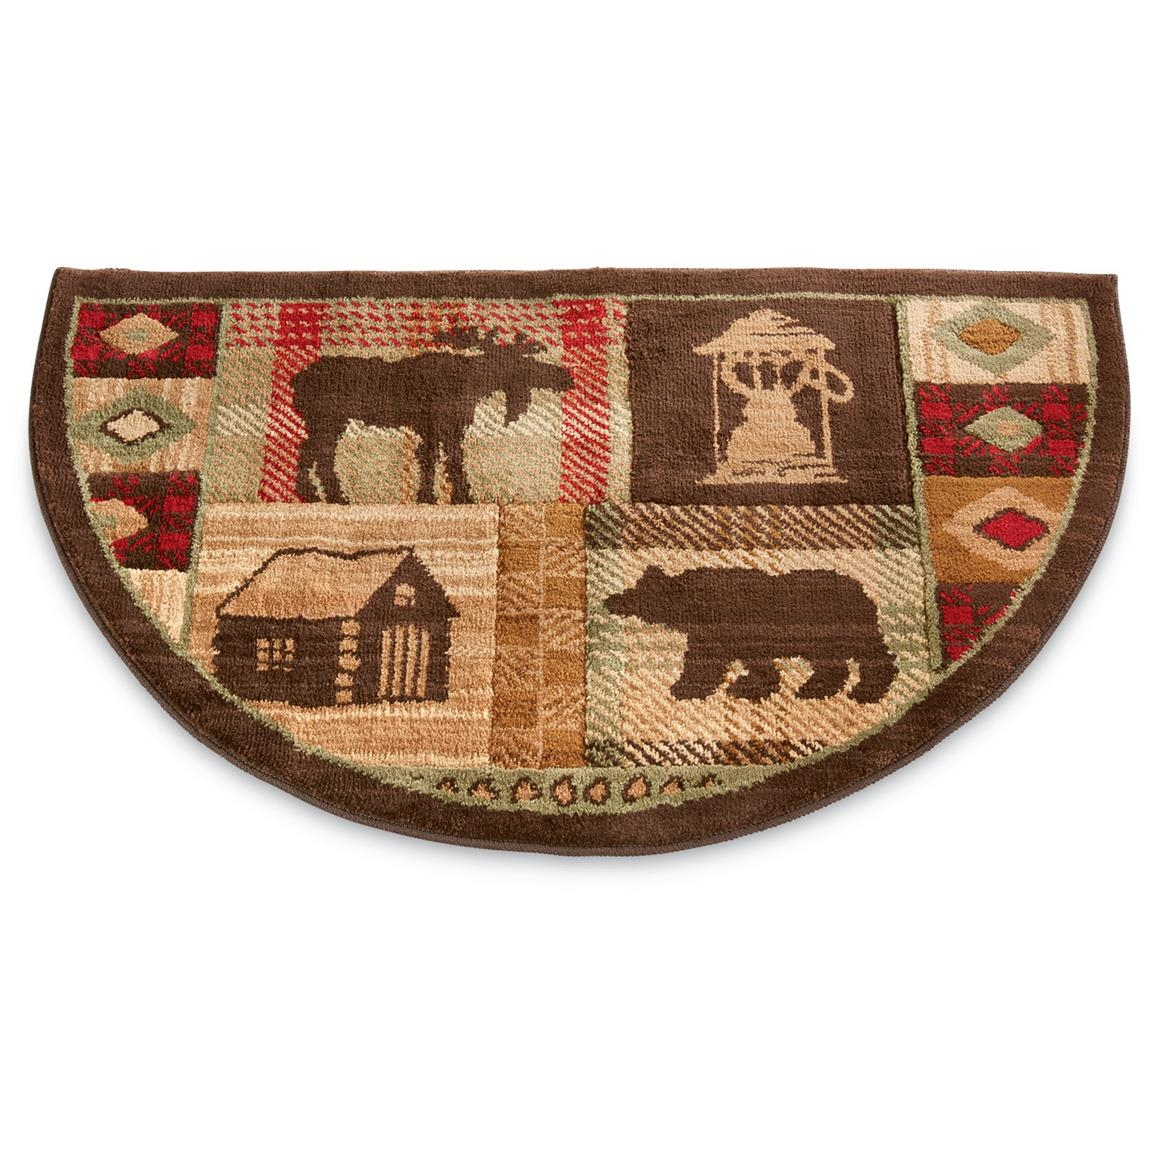 Mohawk Lodge Hearth Rug 233354 Rugs At Sportsmans Guide Throughout Hearth Rugs (View 4 of 15)